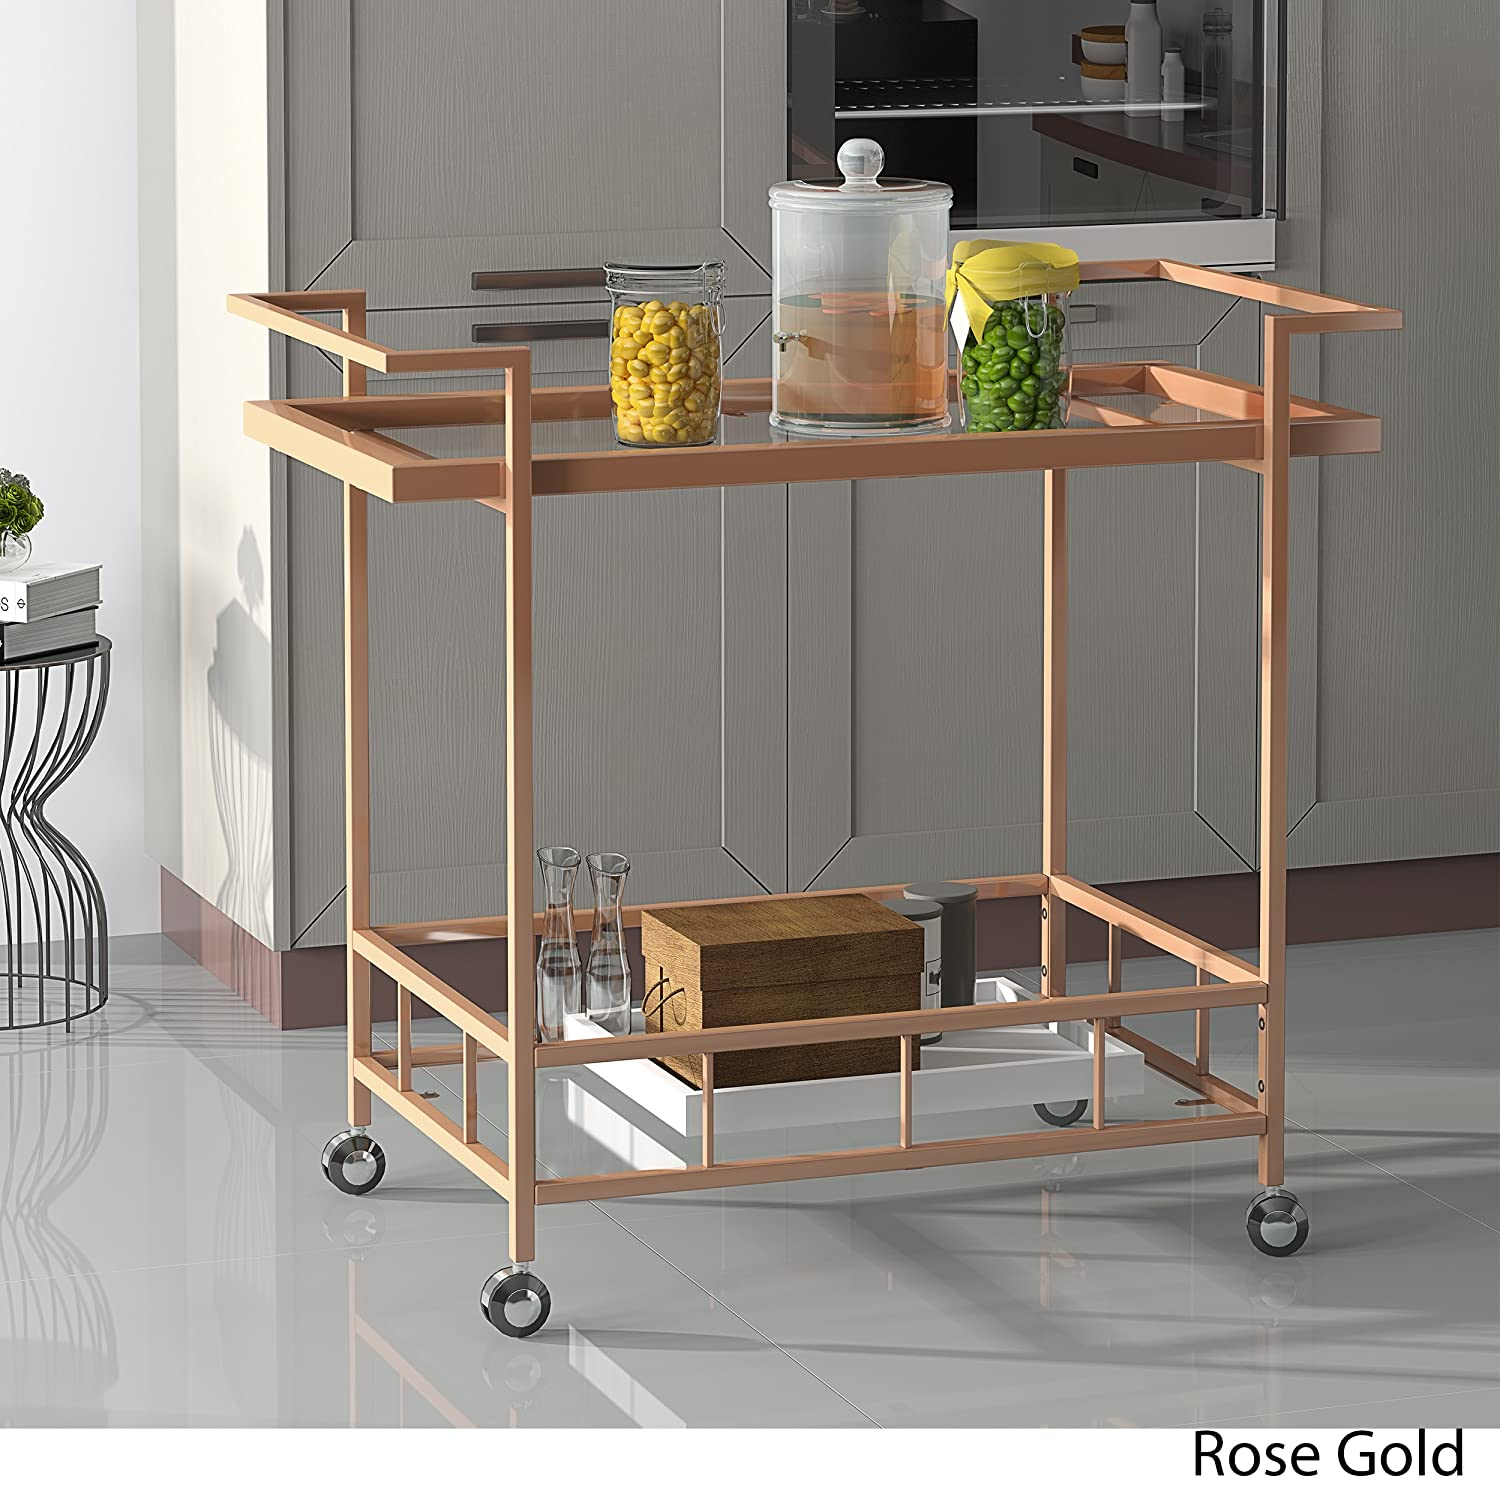 Amaya Industrial Iron and Glass Bar Cart, Rose Gold